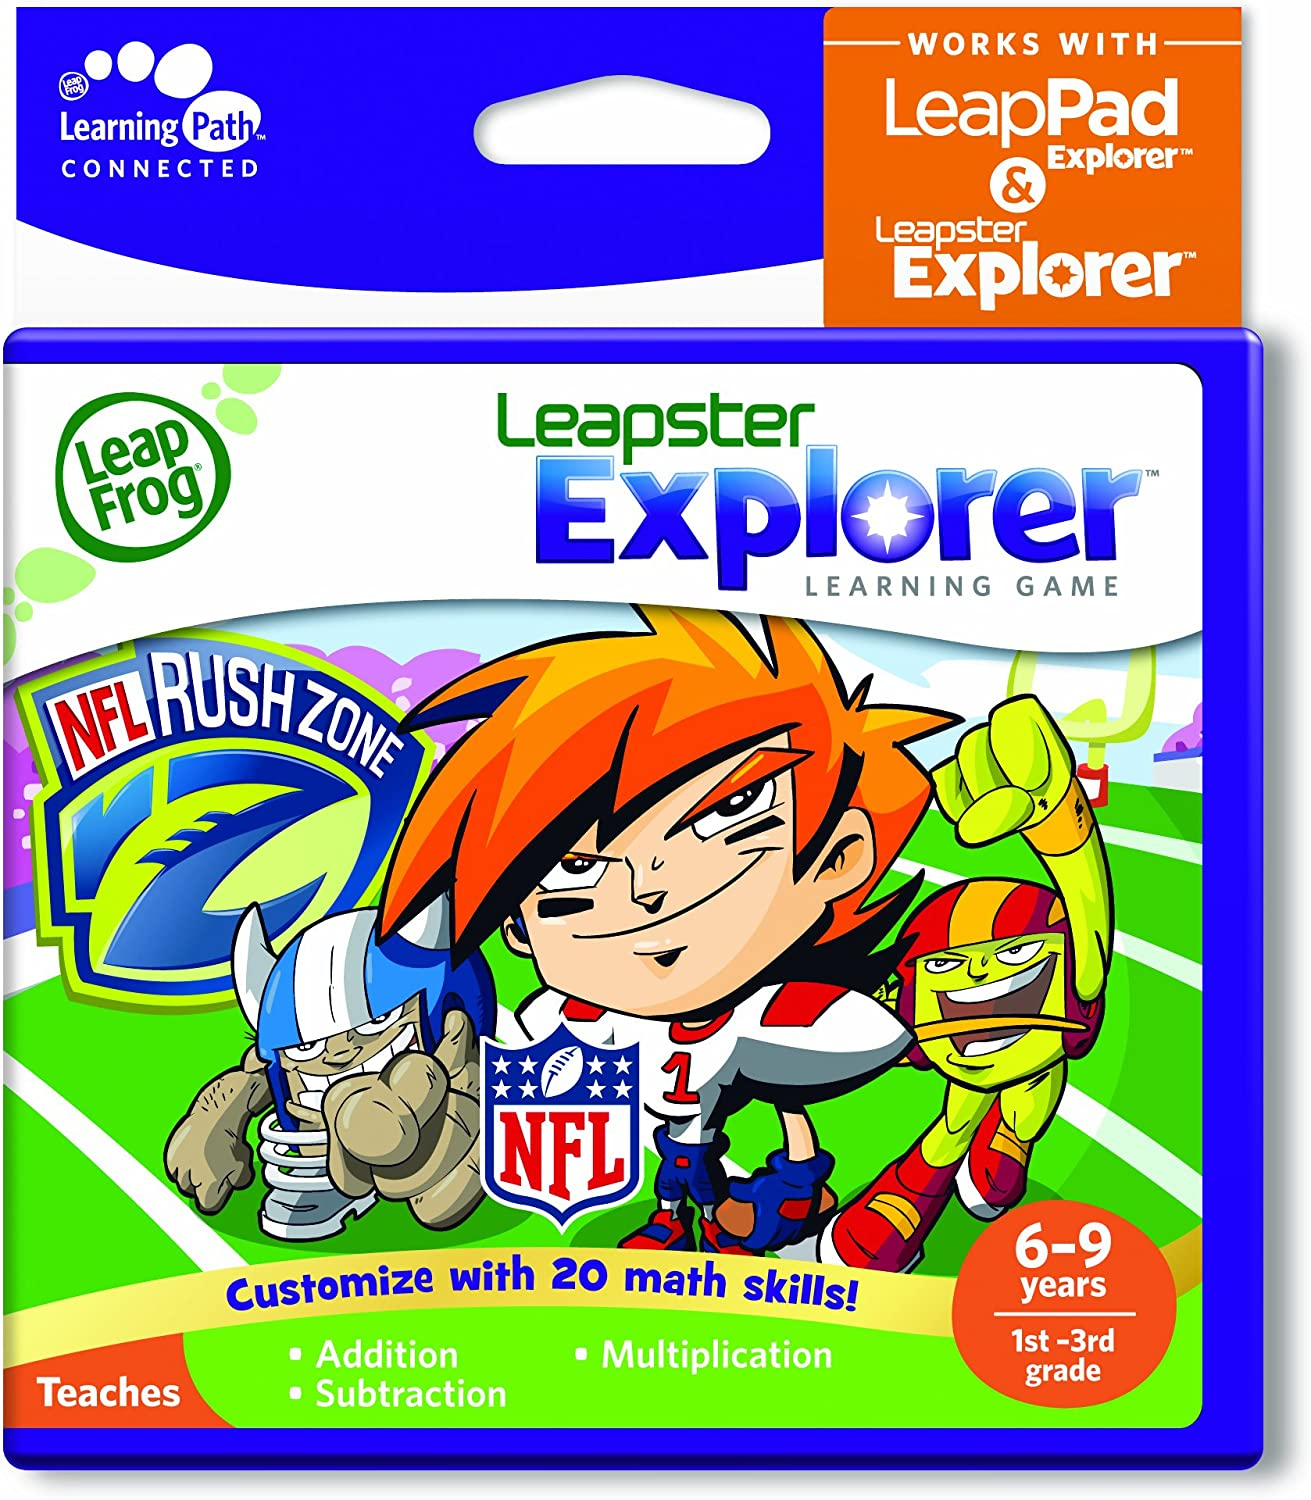 Leapster explorer games work in leapster 2 persol casino royale daniel craig